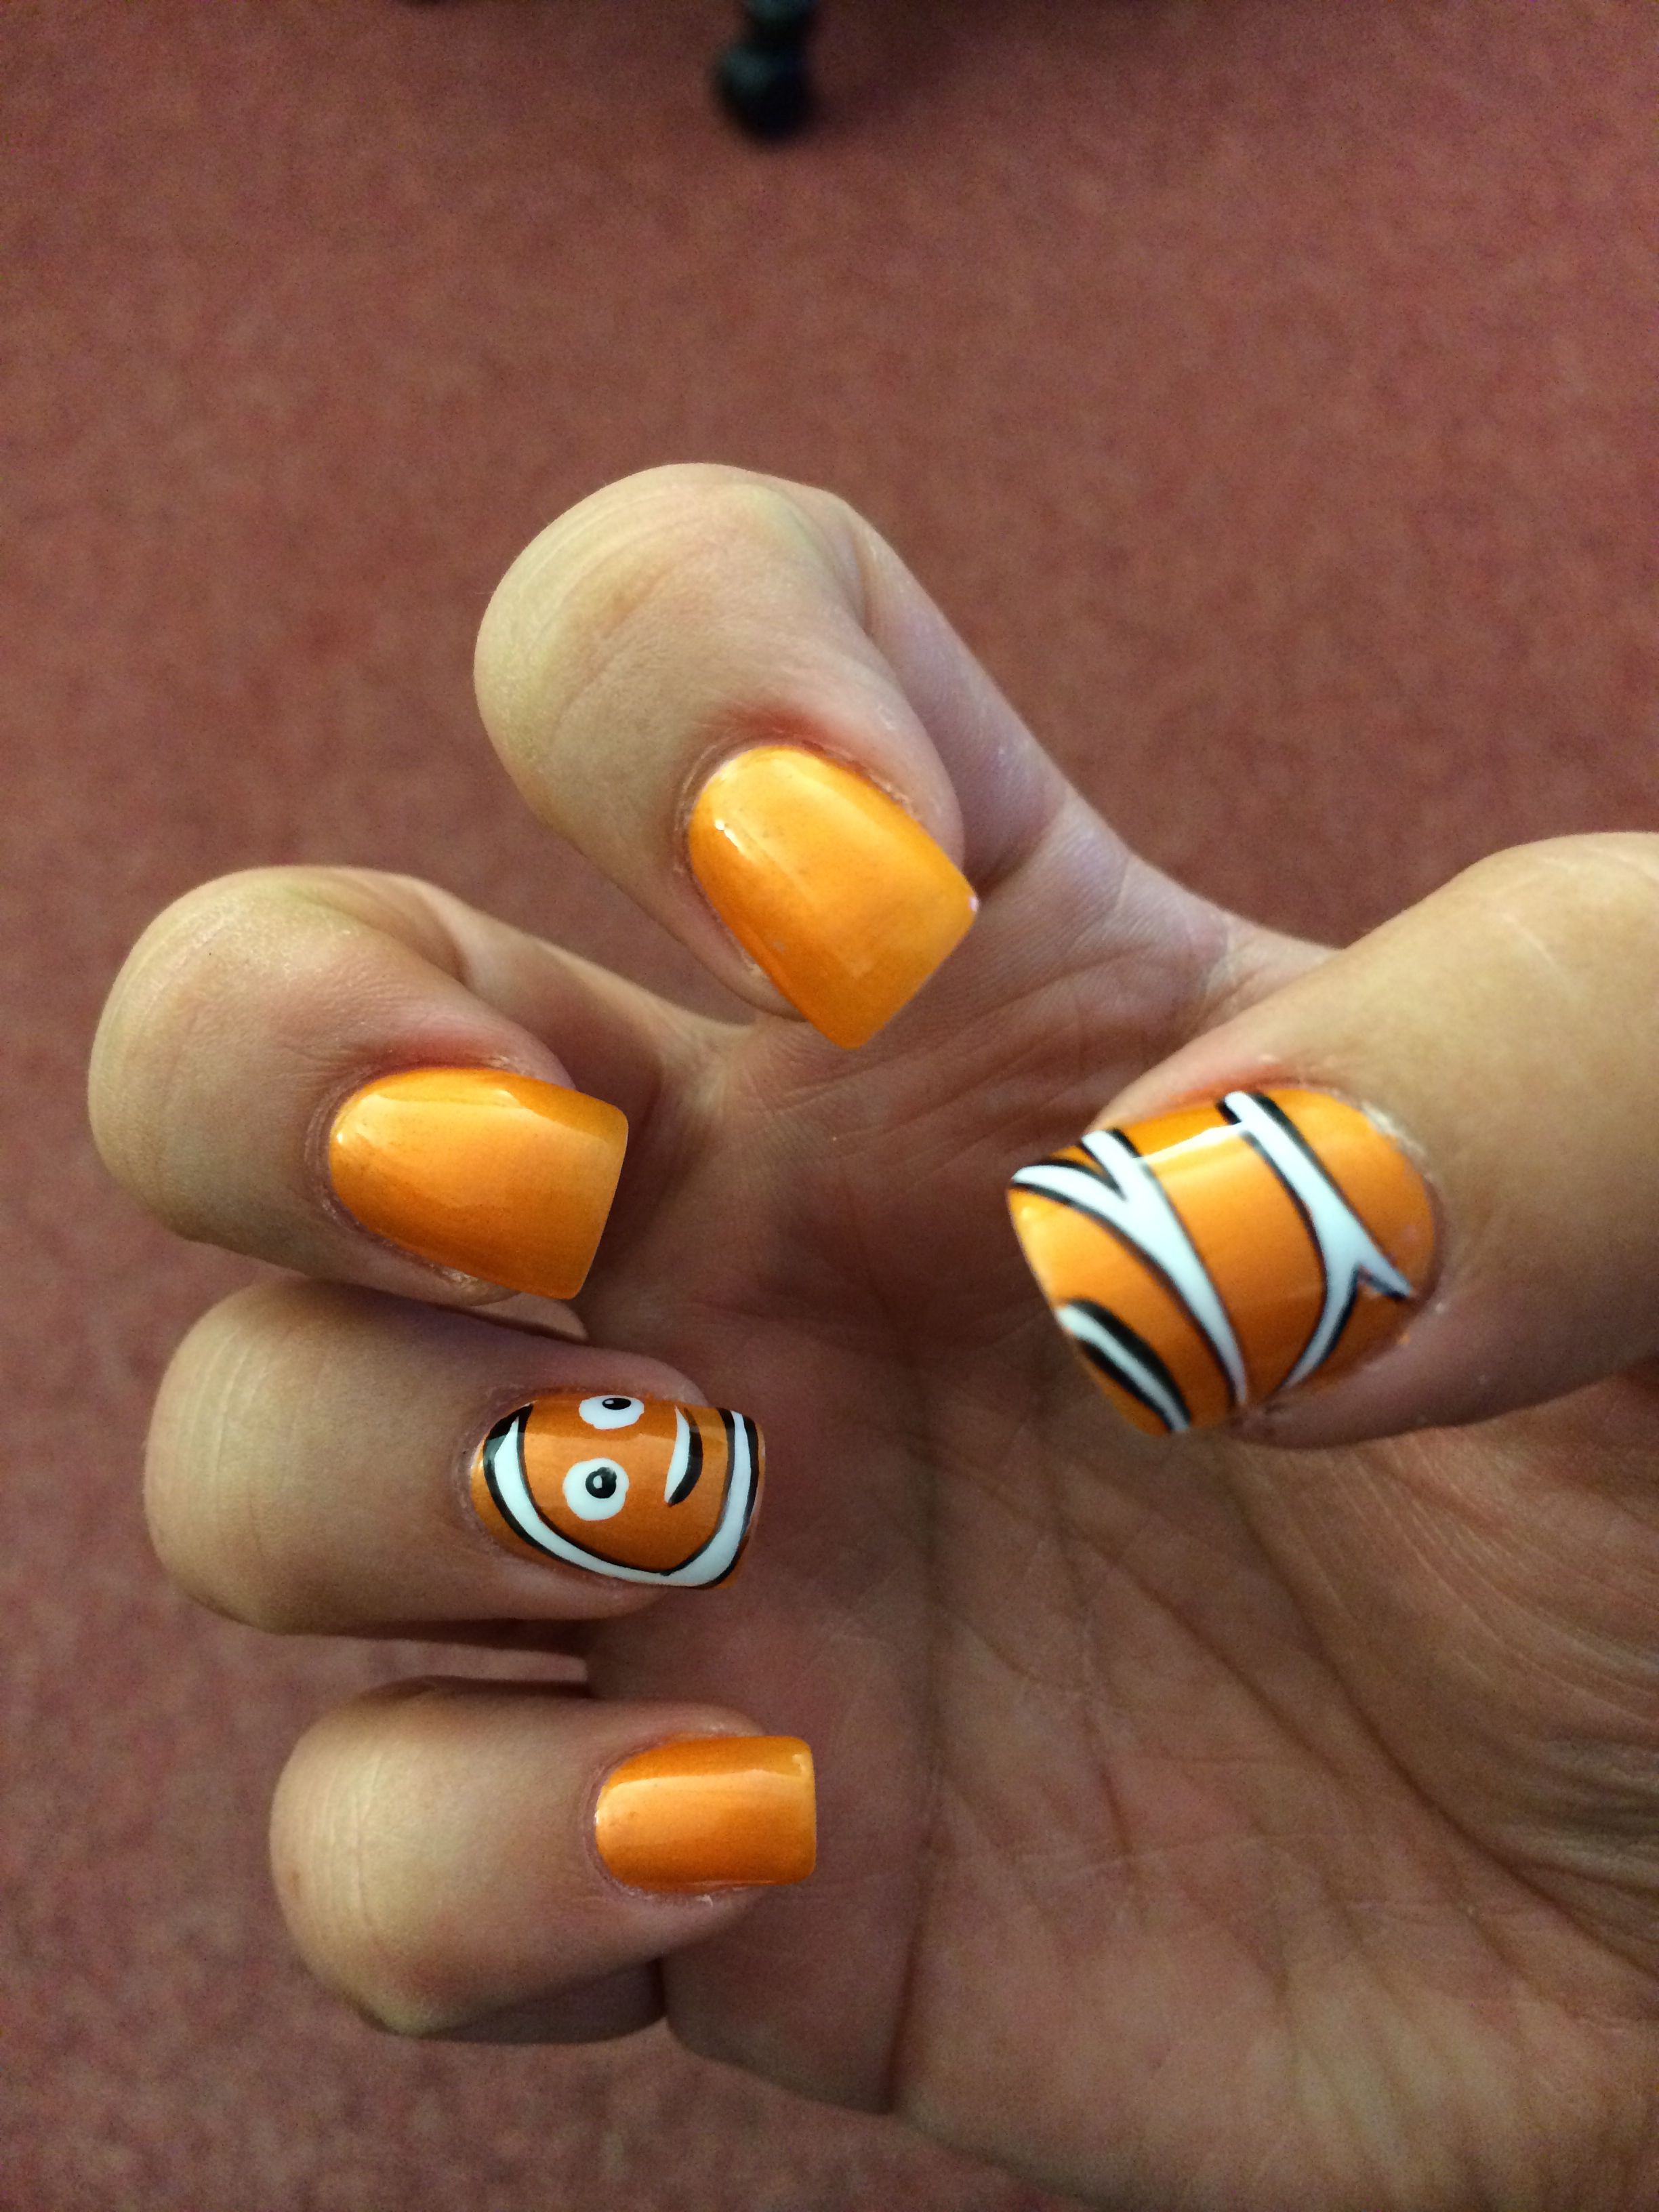 Finding nemo nails | My Style - Nail designs | Pinterest ...